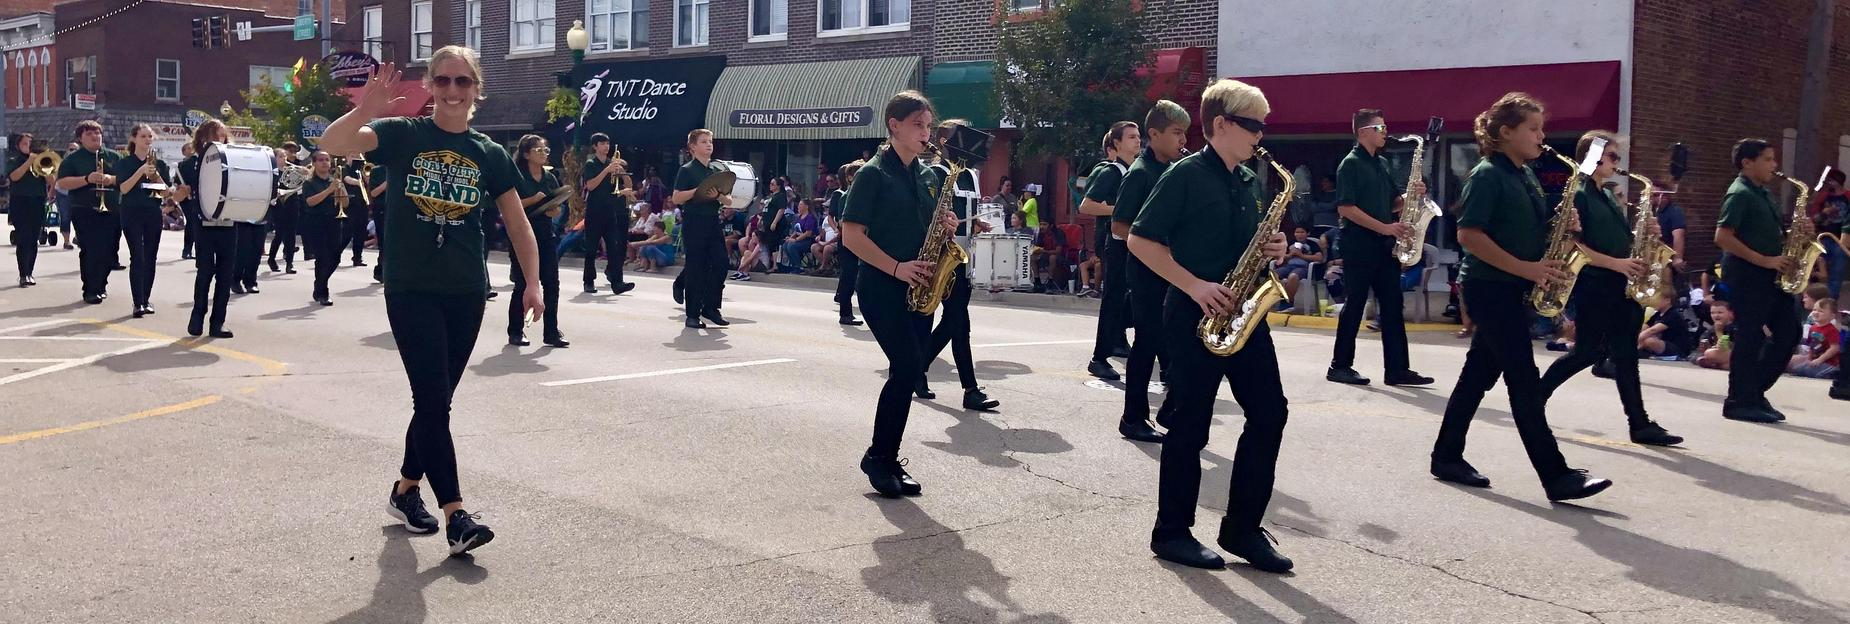 Ms Bontrager and her band in the parade